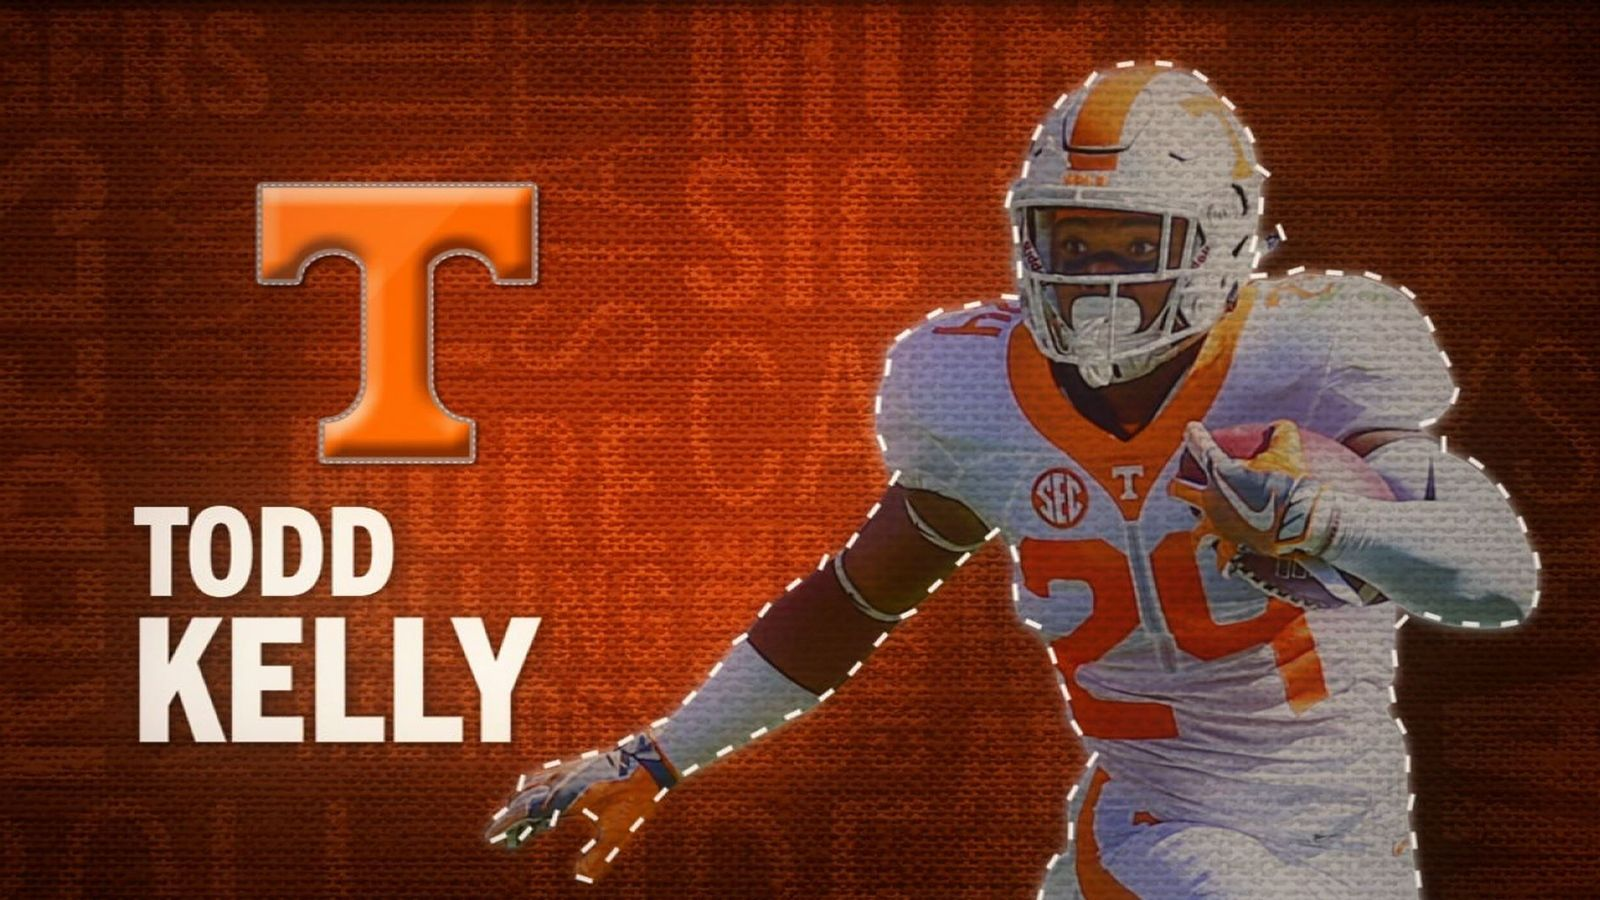 I am the SEC: Tennessee's Todd Kelly